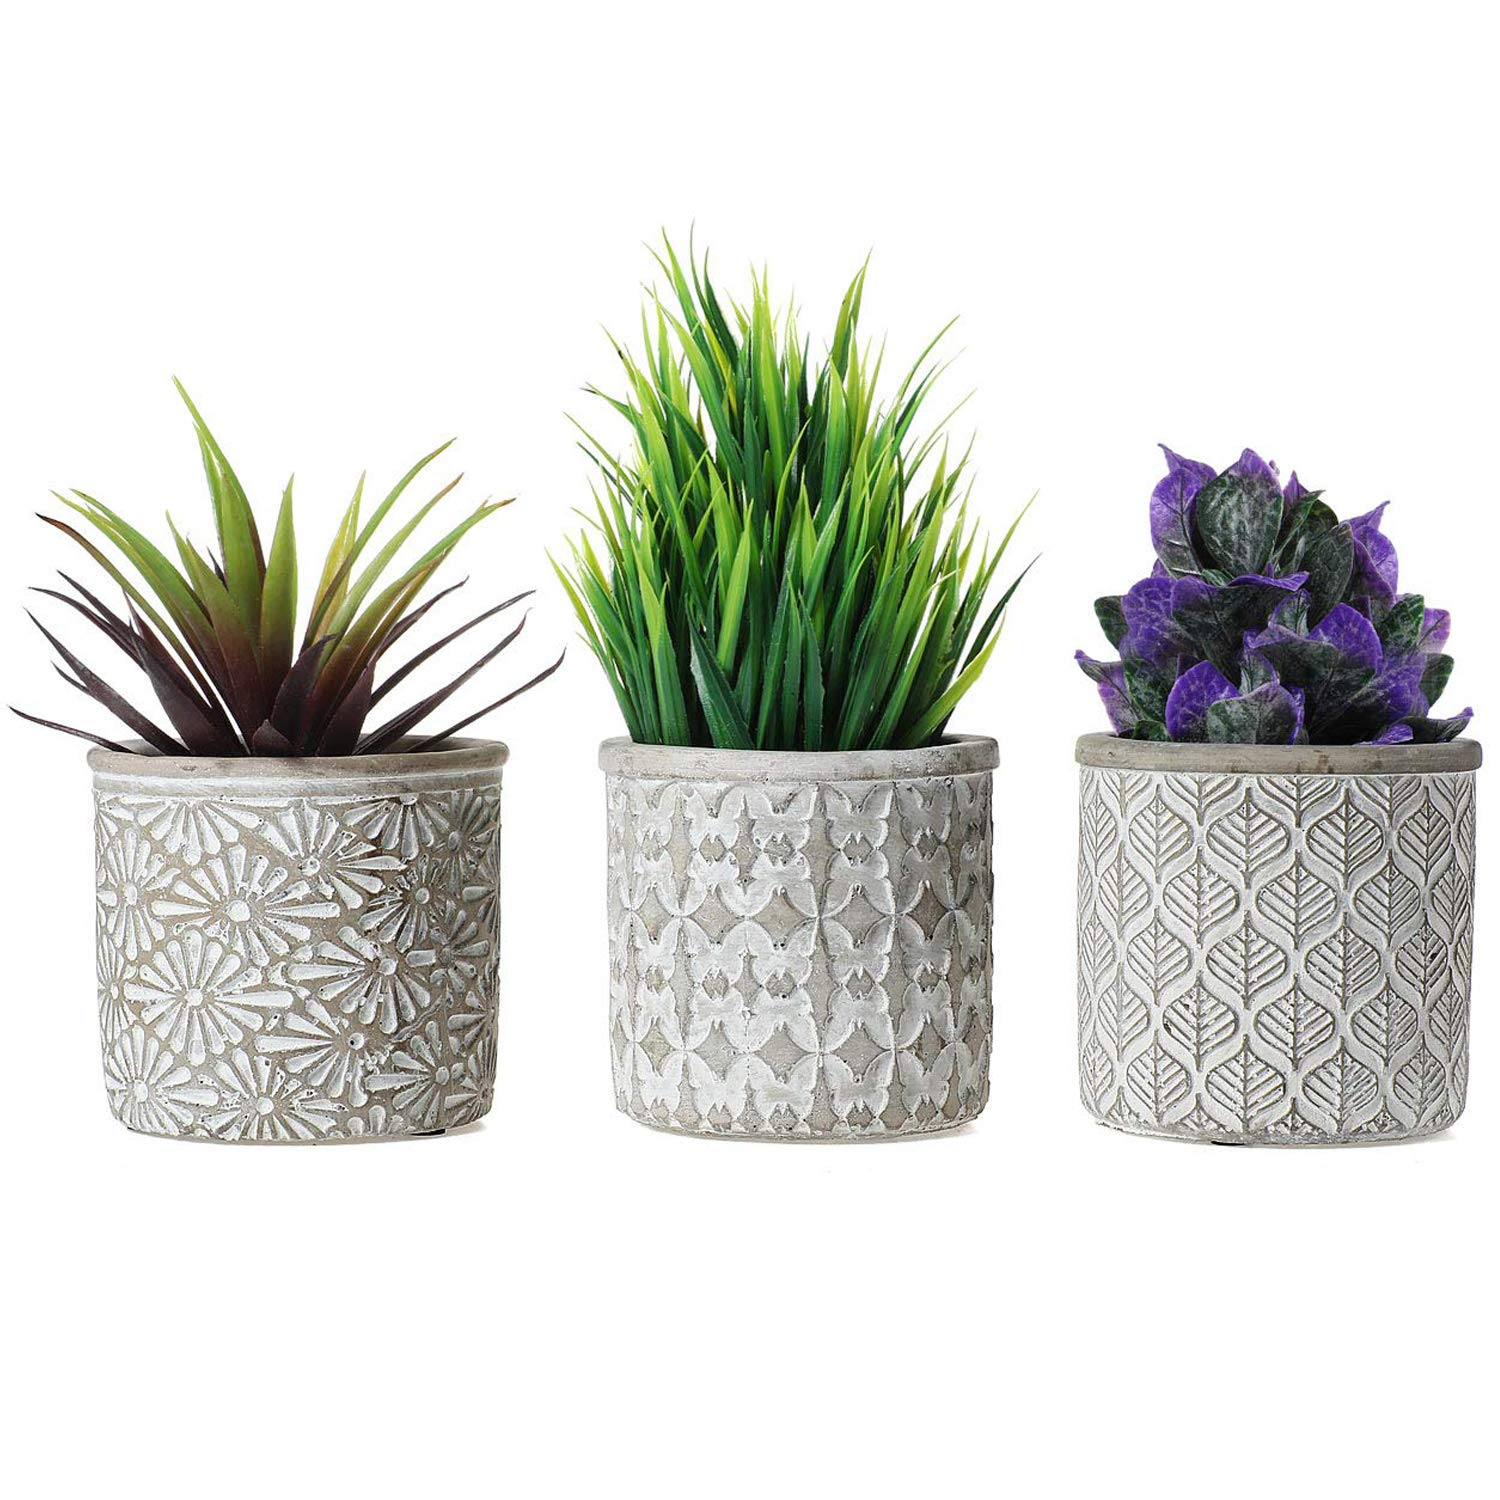 T4U 3.25 Inch Cement Pot Grey Set of 3, Small Concrete Succulent Round Planter Vase Plant Herb Cactus Container Window Box Holder for Home and Office Decor Birthday Wedding